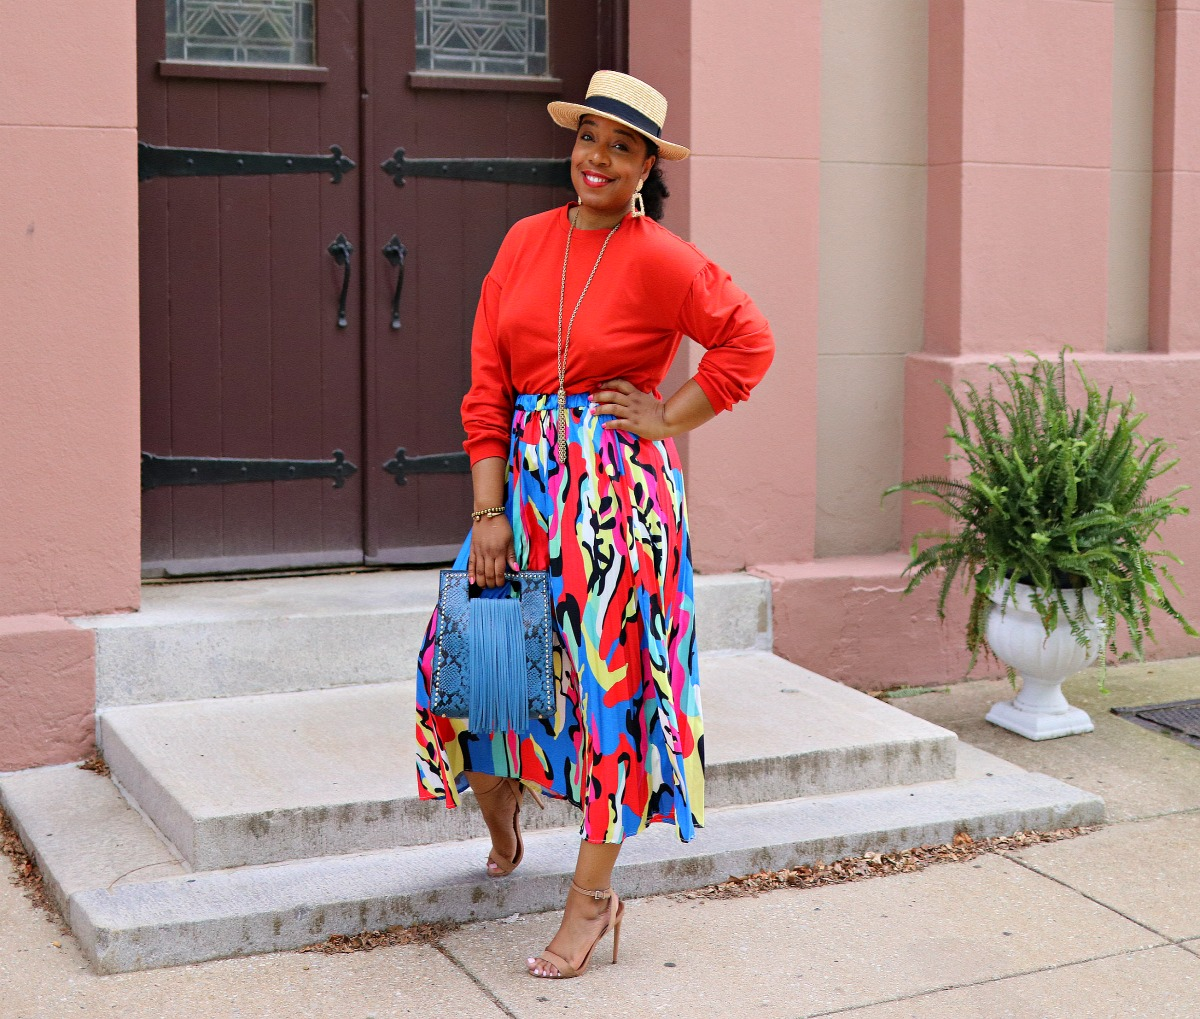 Style & Poise: Colorful abstract skirt, Snakeskin Fringe purse, Boater's Hat, Nude Sandals, Spring Fashion, Colorful Street Style.